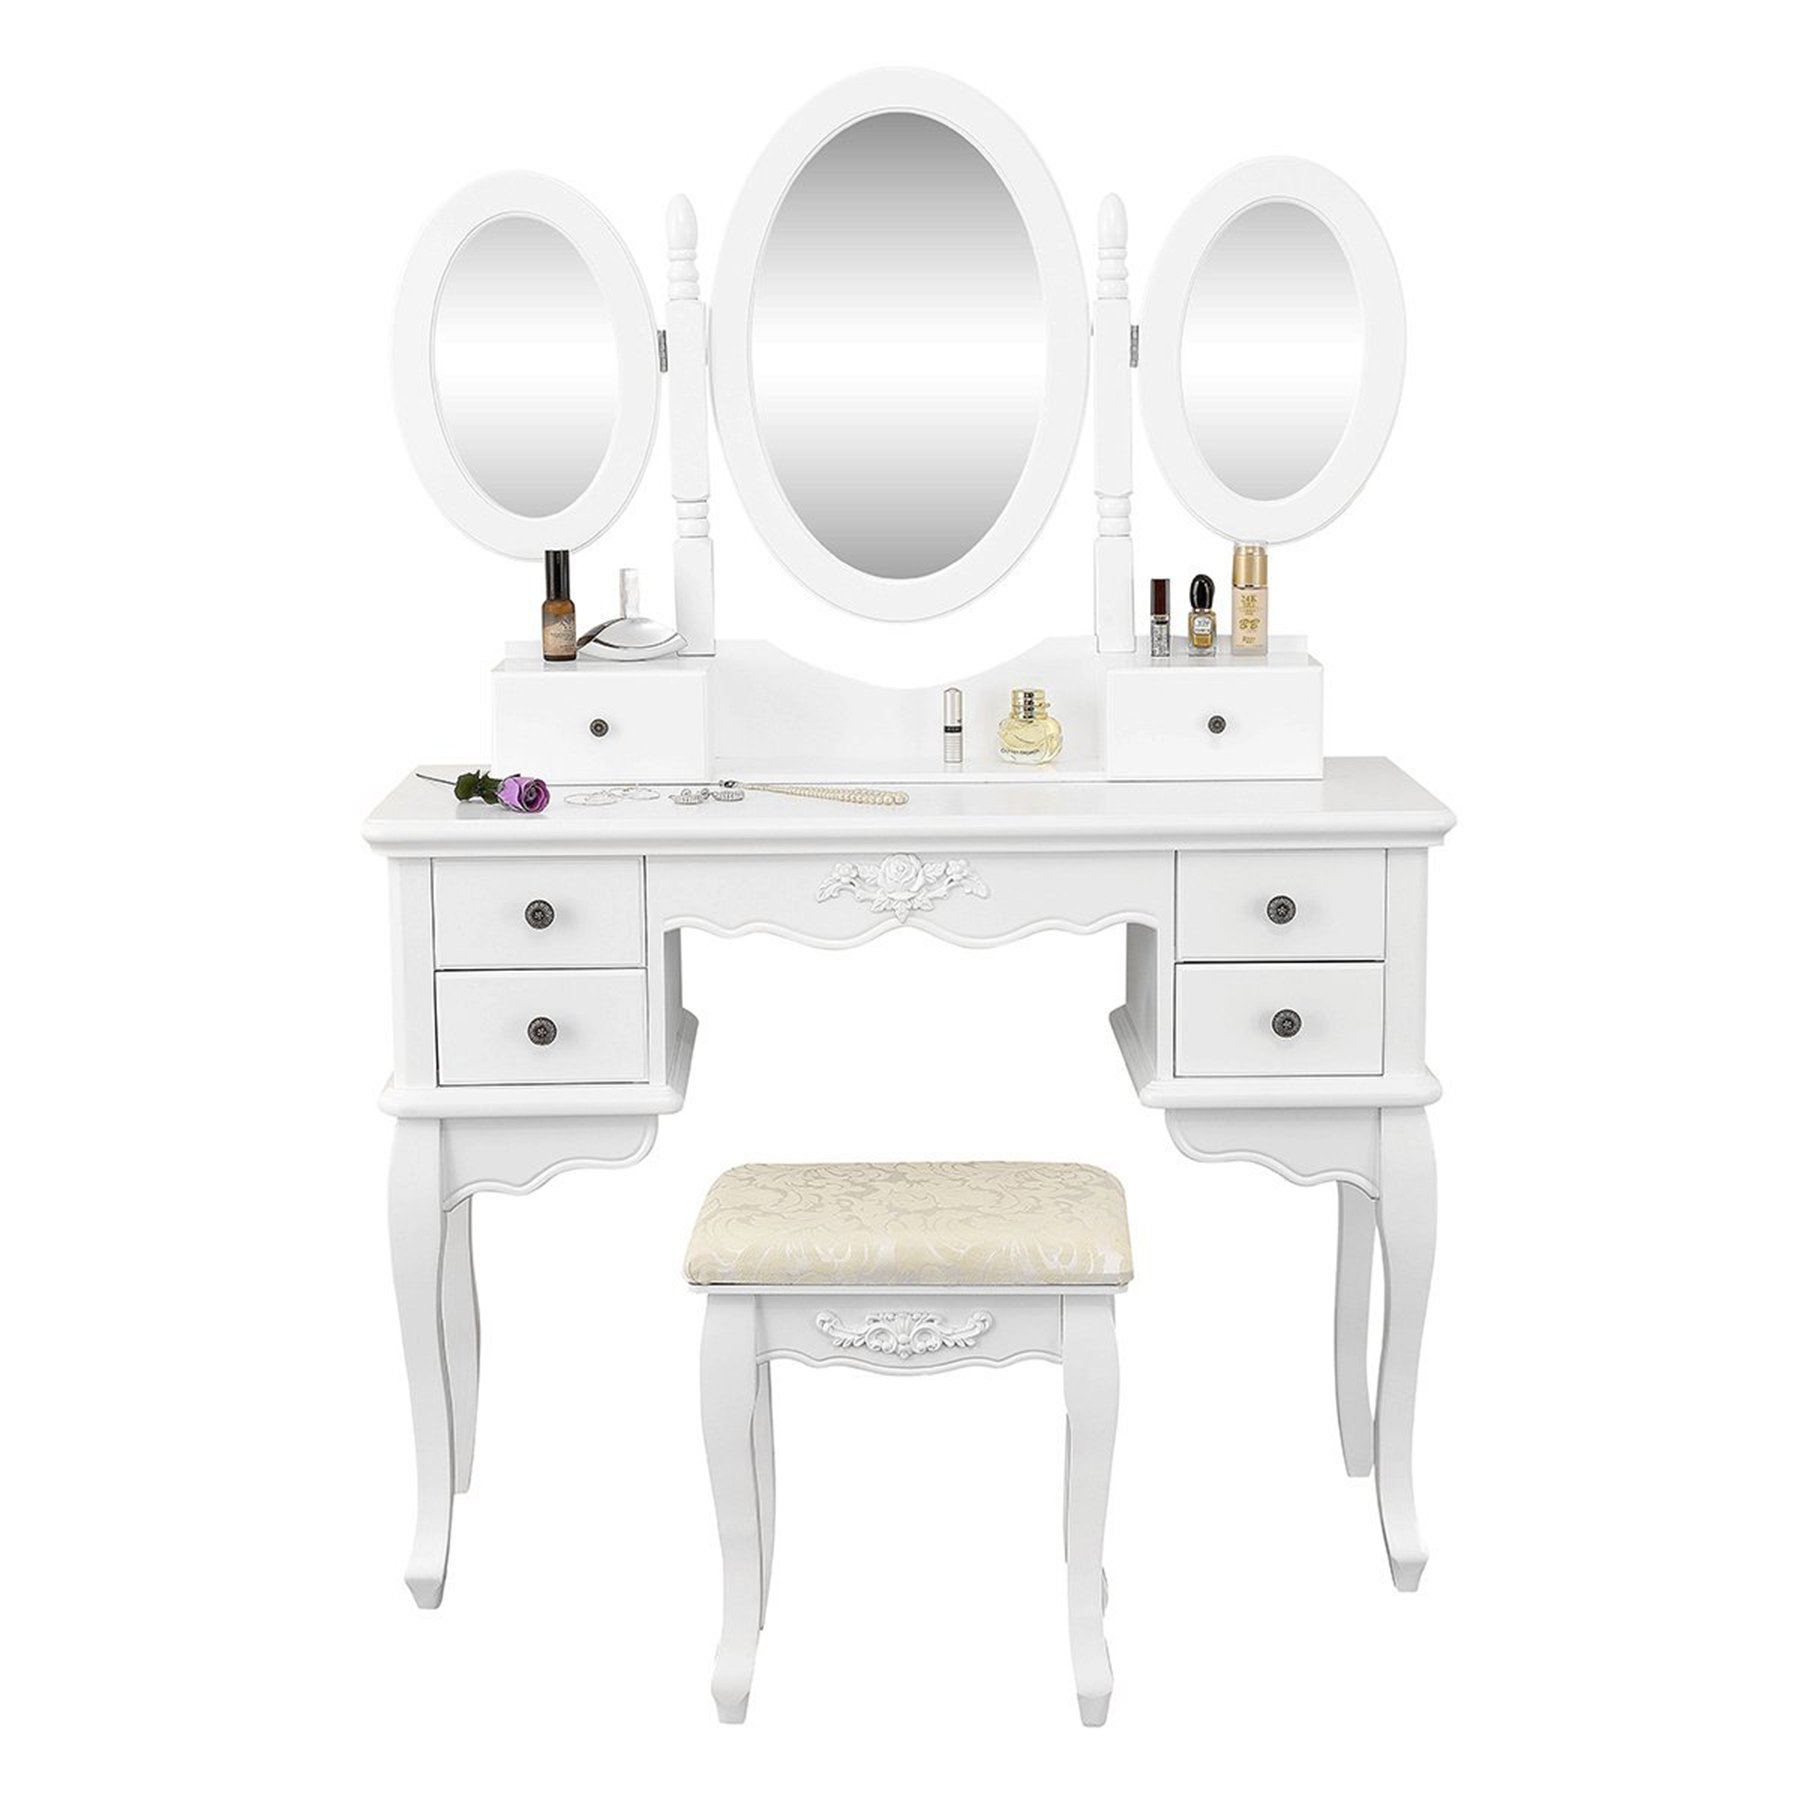 Vanity Table Set 3 Folding Mirror Make Up Dressing Table with Padded Stool & 6 Drawers, White